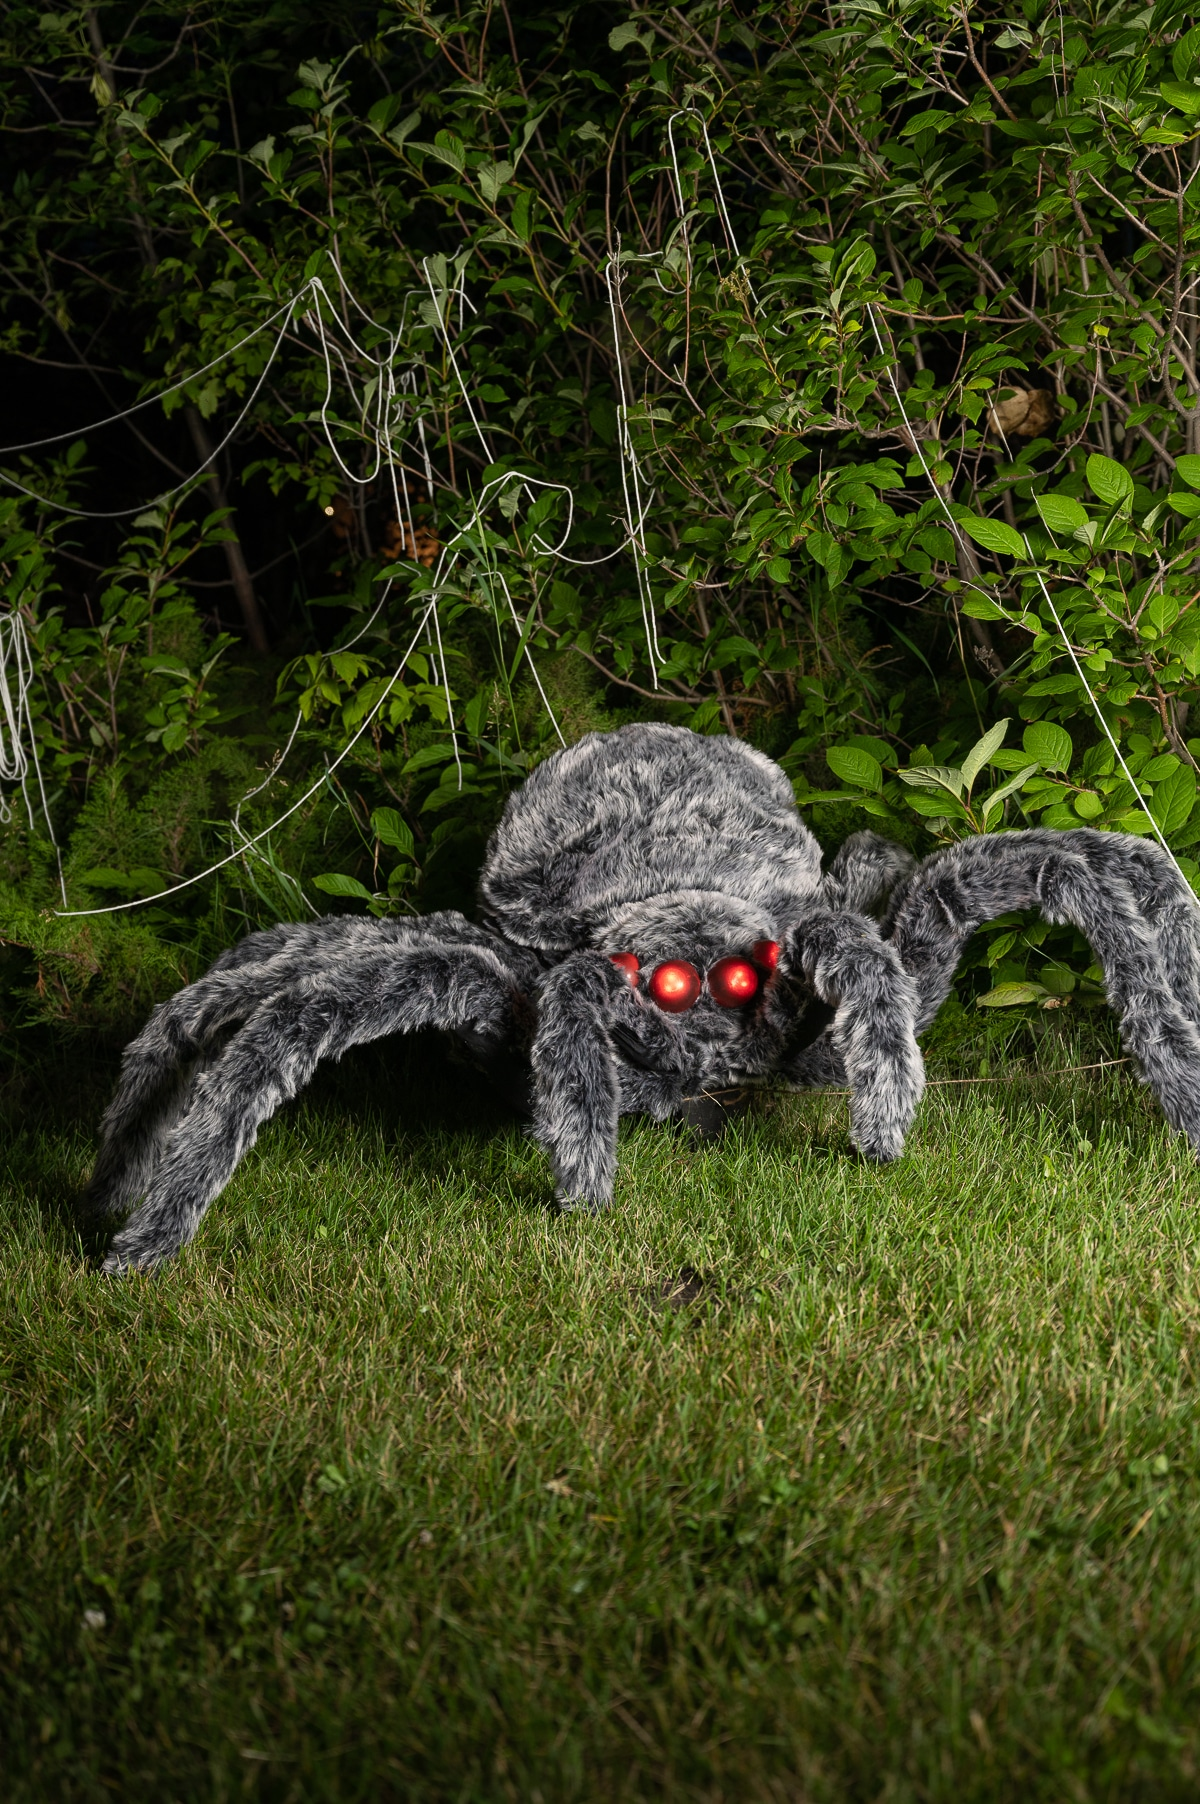 A giant grey furry Halloween spider with glowing eyes hanging out on the lawn with spider silks in the greenery